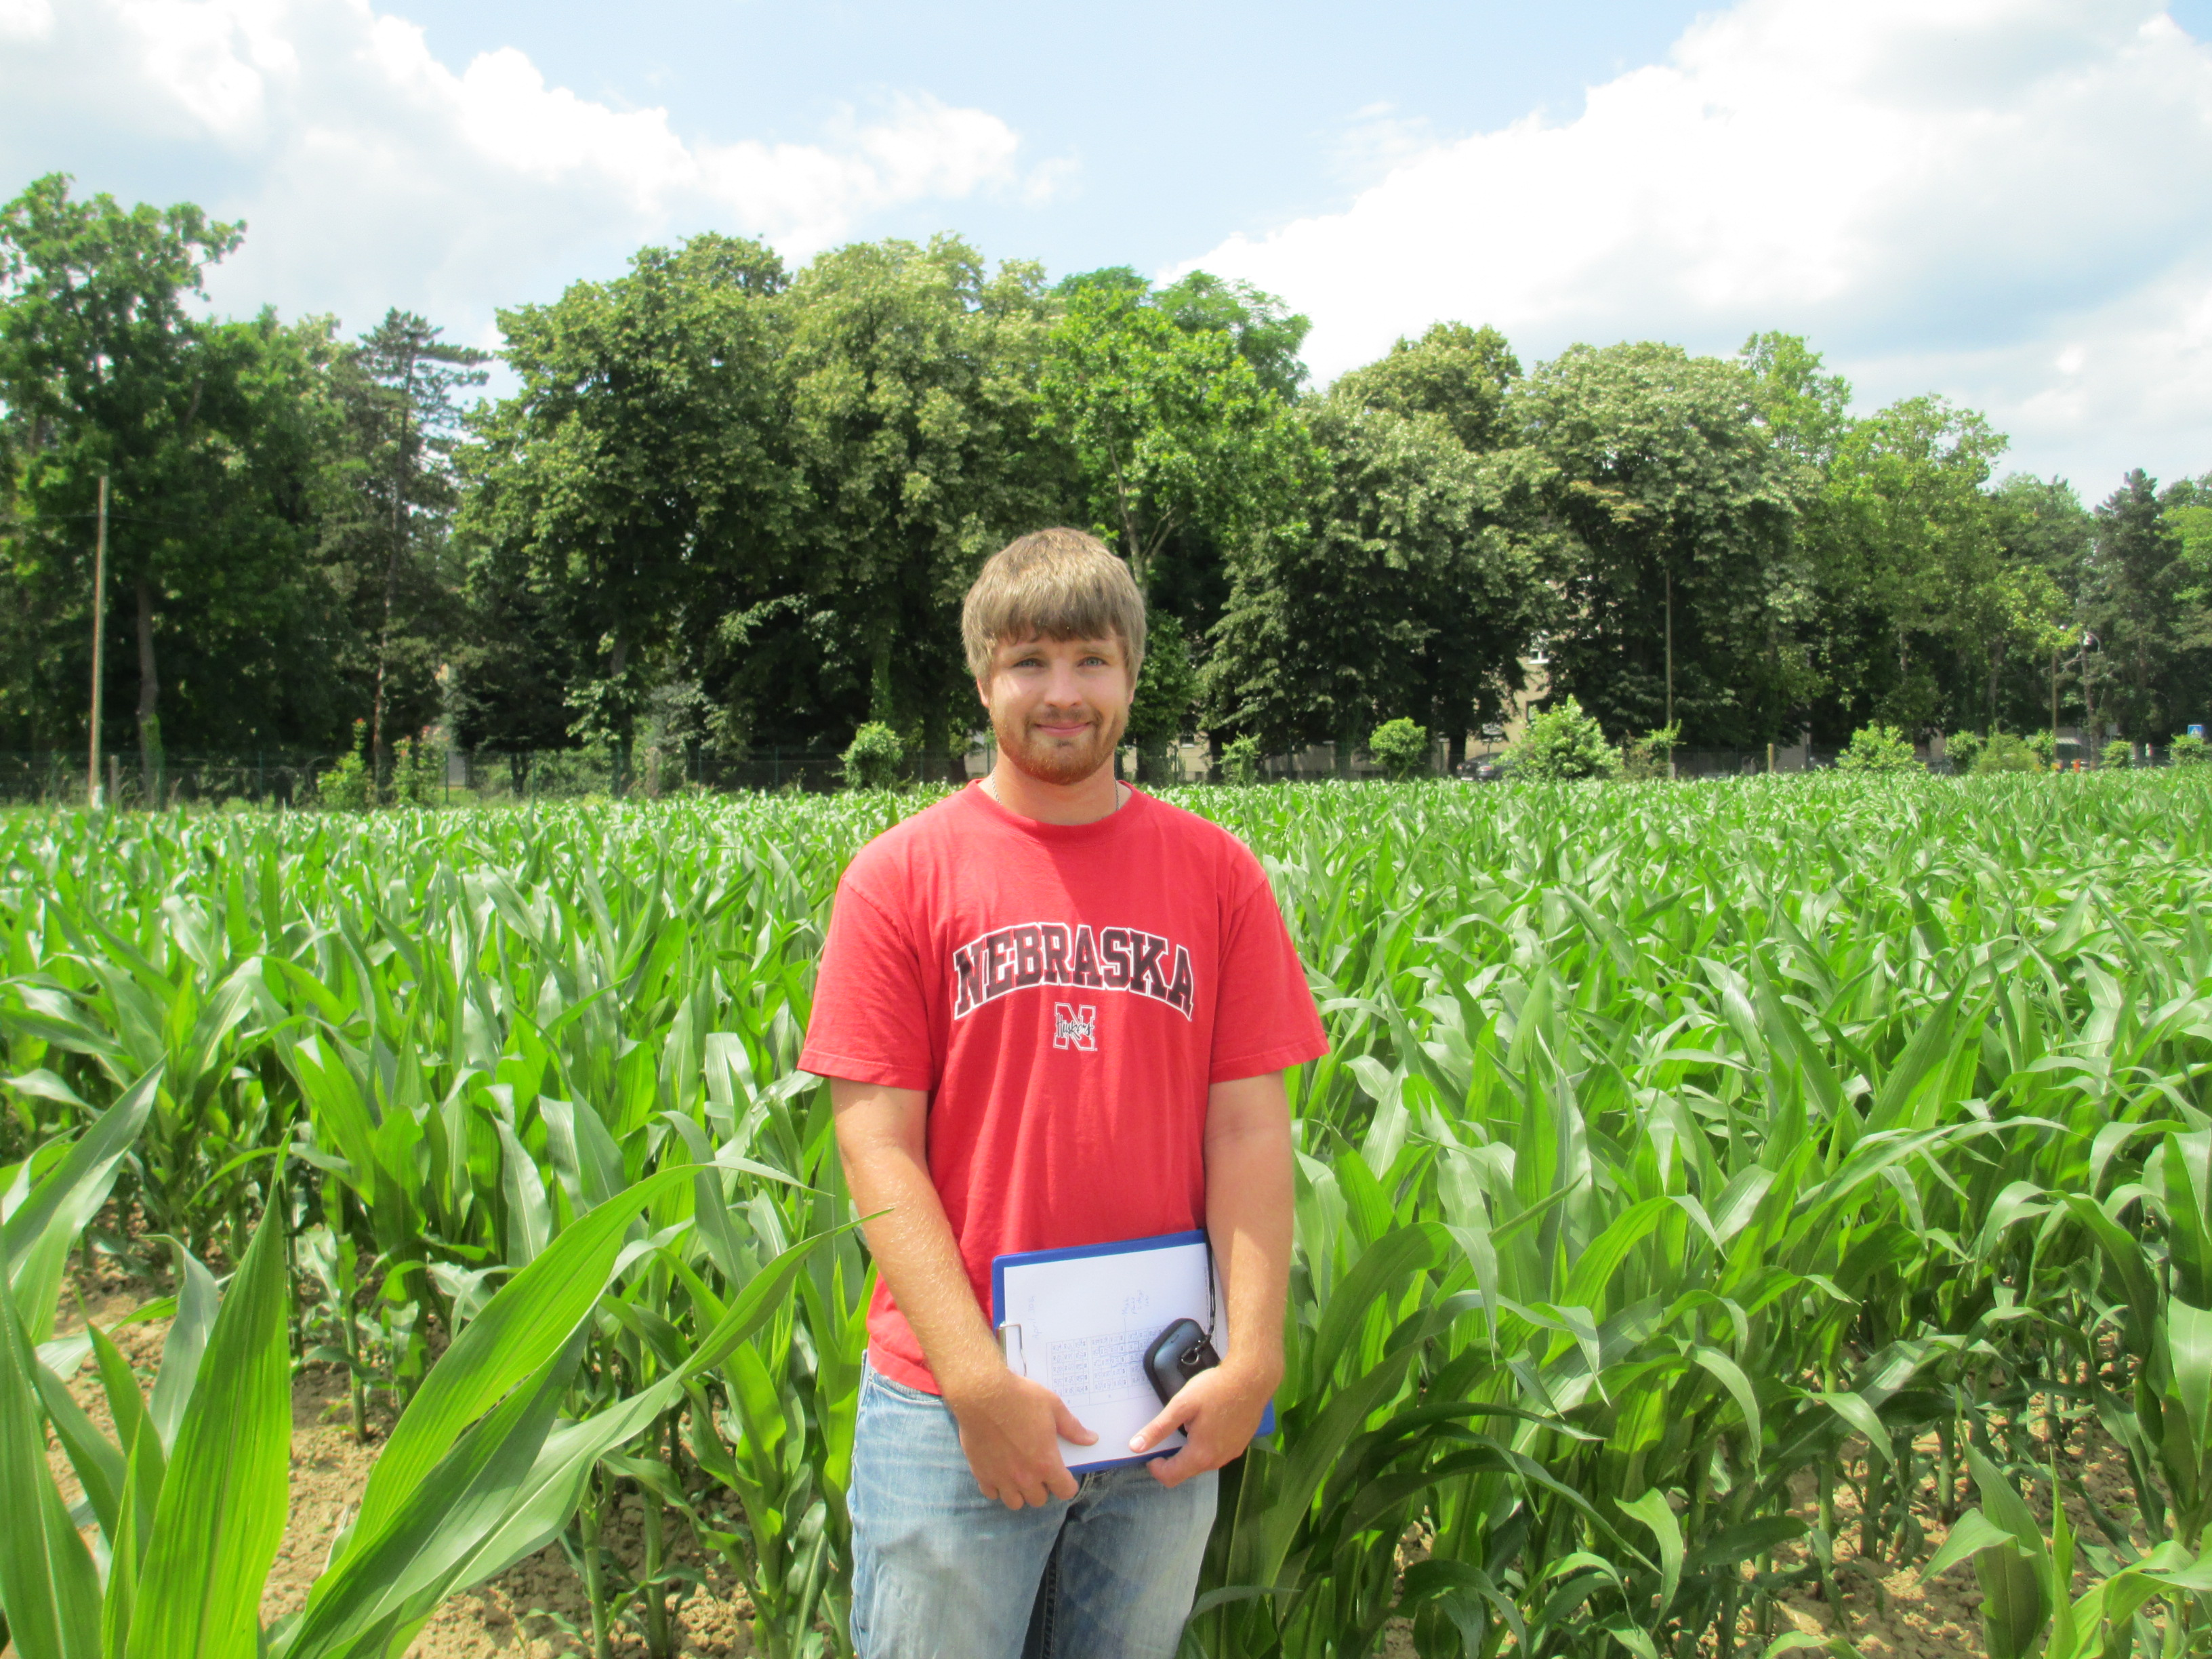 Nebraska graduate student Jeremy Milander shown with maize crop in Croatia